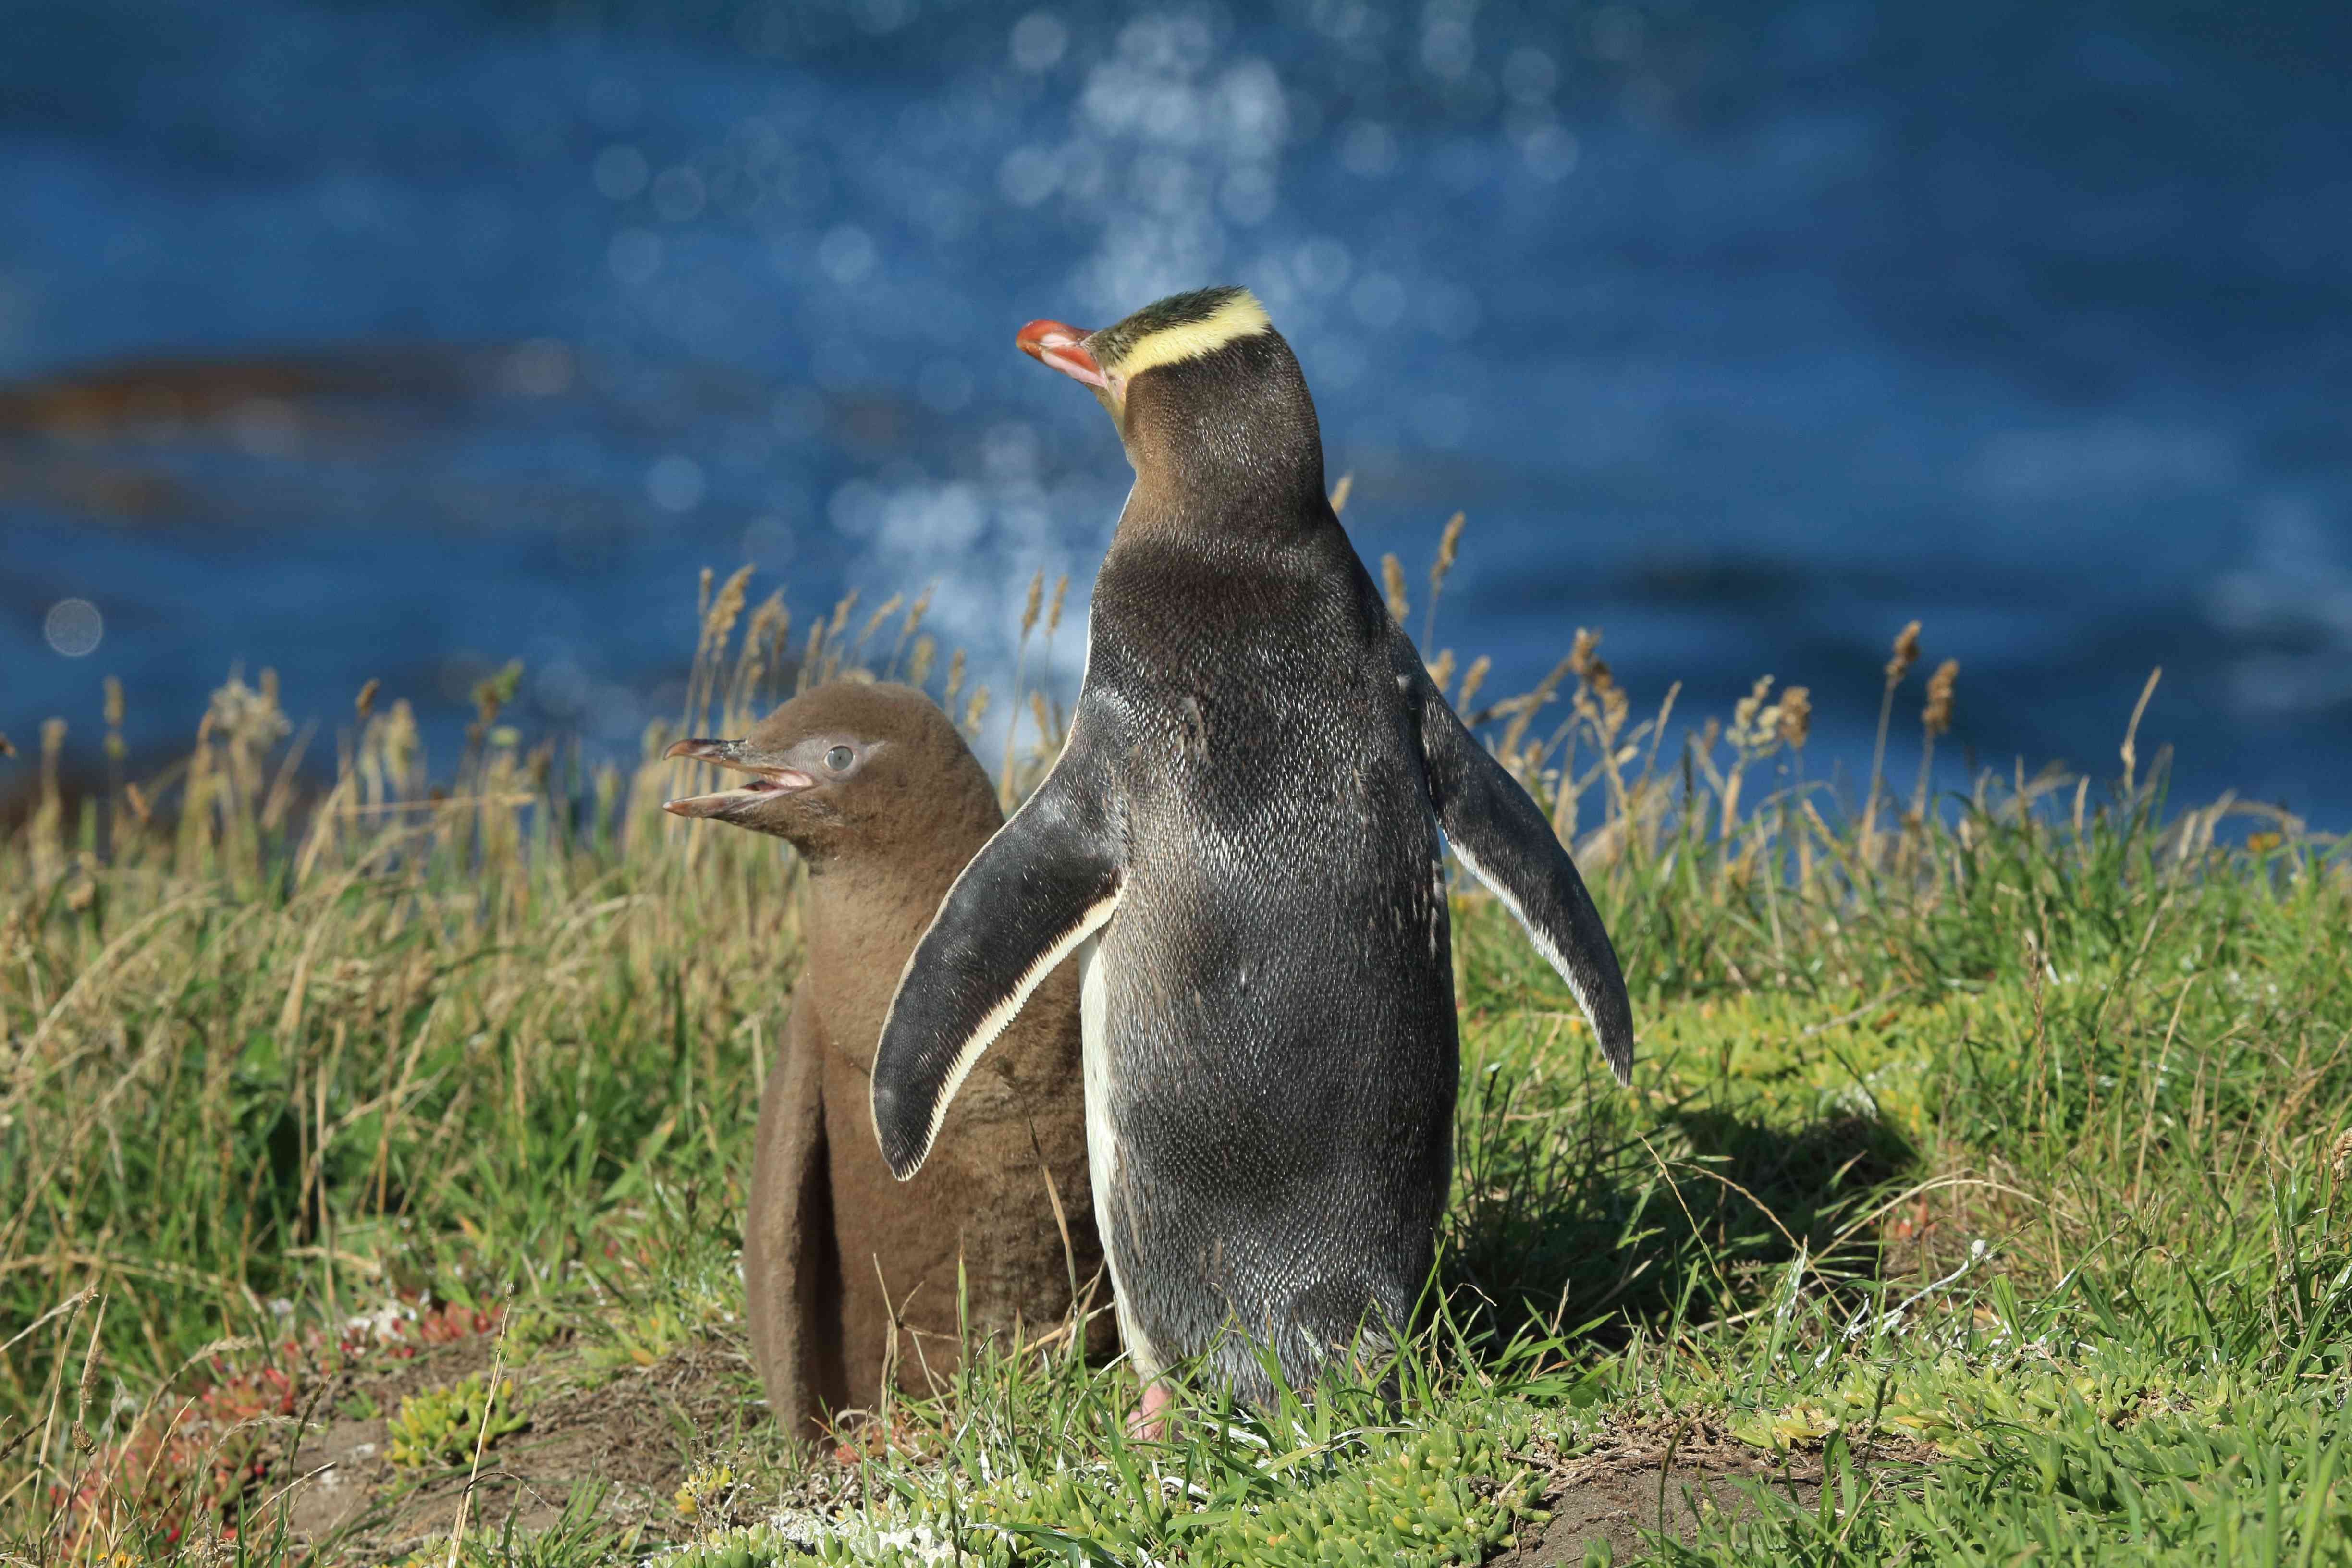 yellow-eyed penguin adult and baby standing in grass